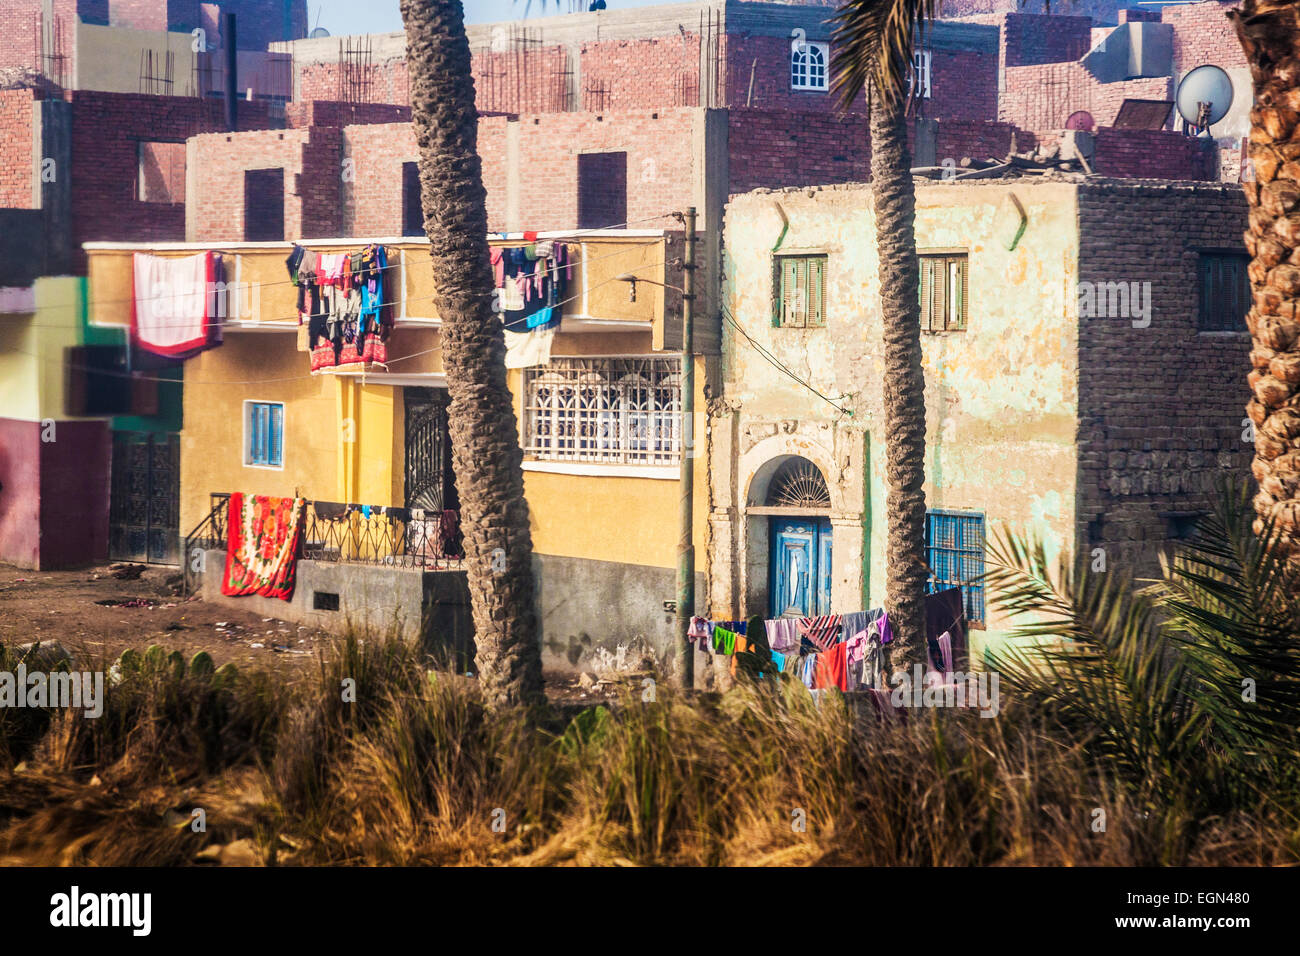 An Egyptian village in the rural countryside between Luxor and Cairo. - Stock Image